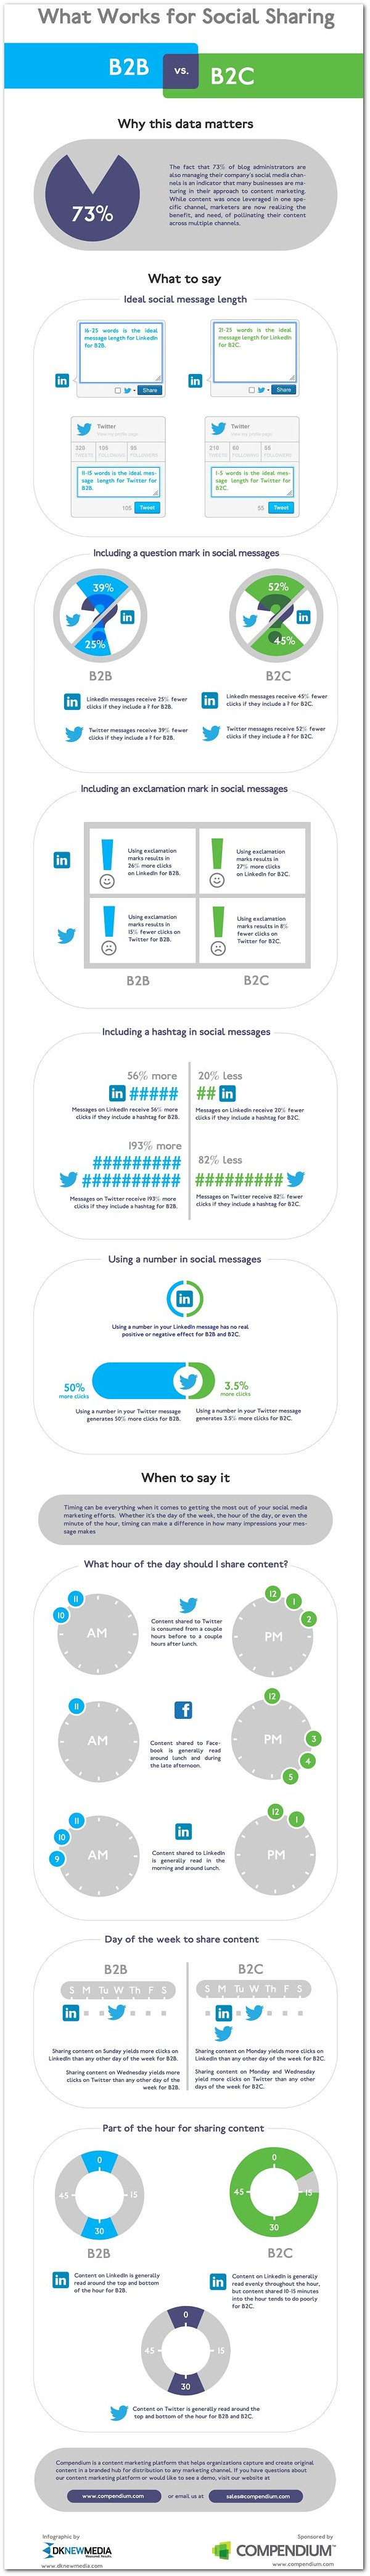 [Infographic] What Works for Social Sharing: B2B vs. B2C